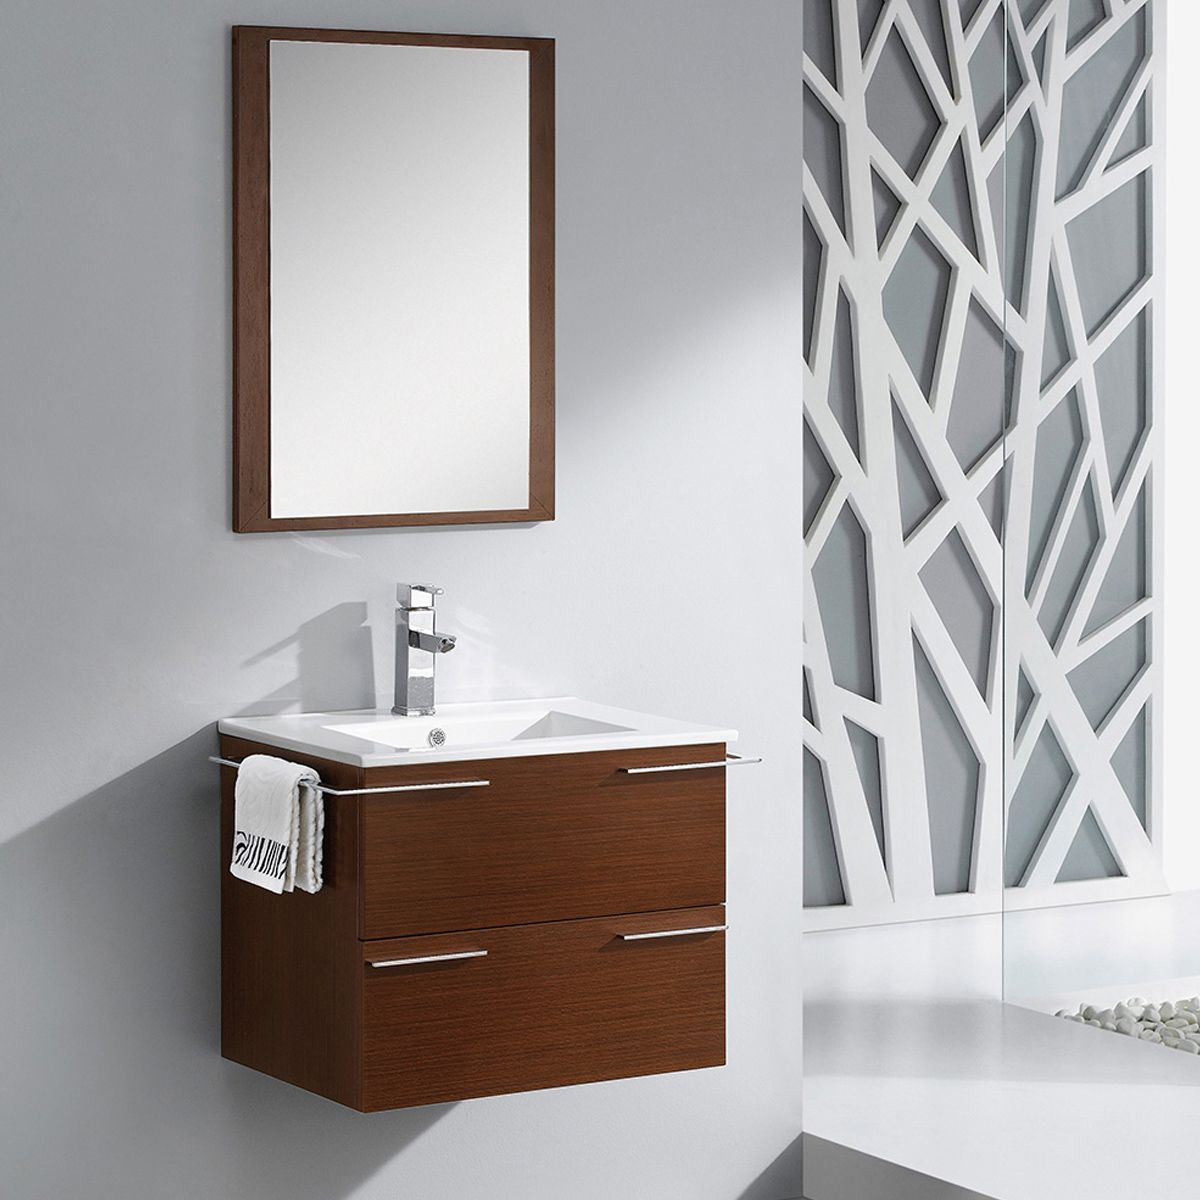 unique bathroom vanity picture countertop inch of depth